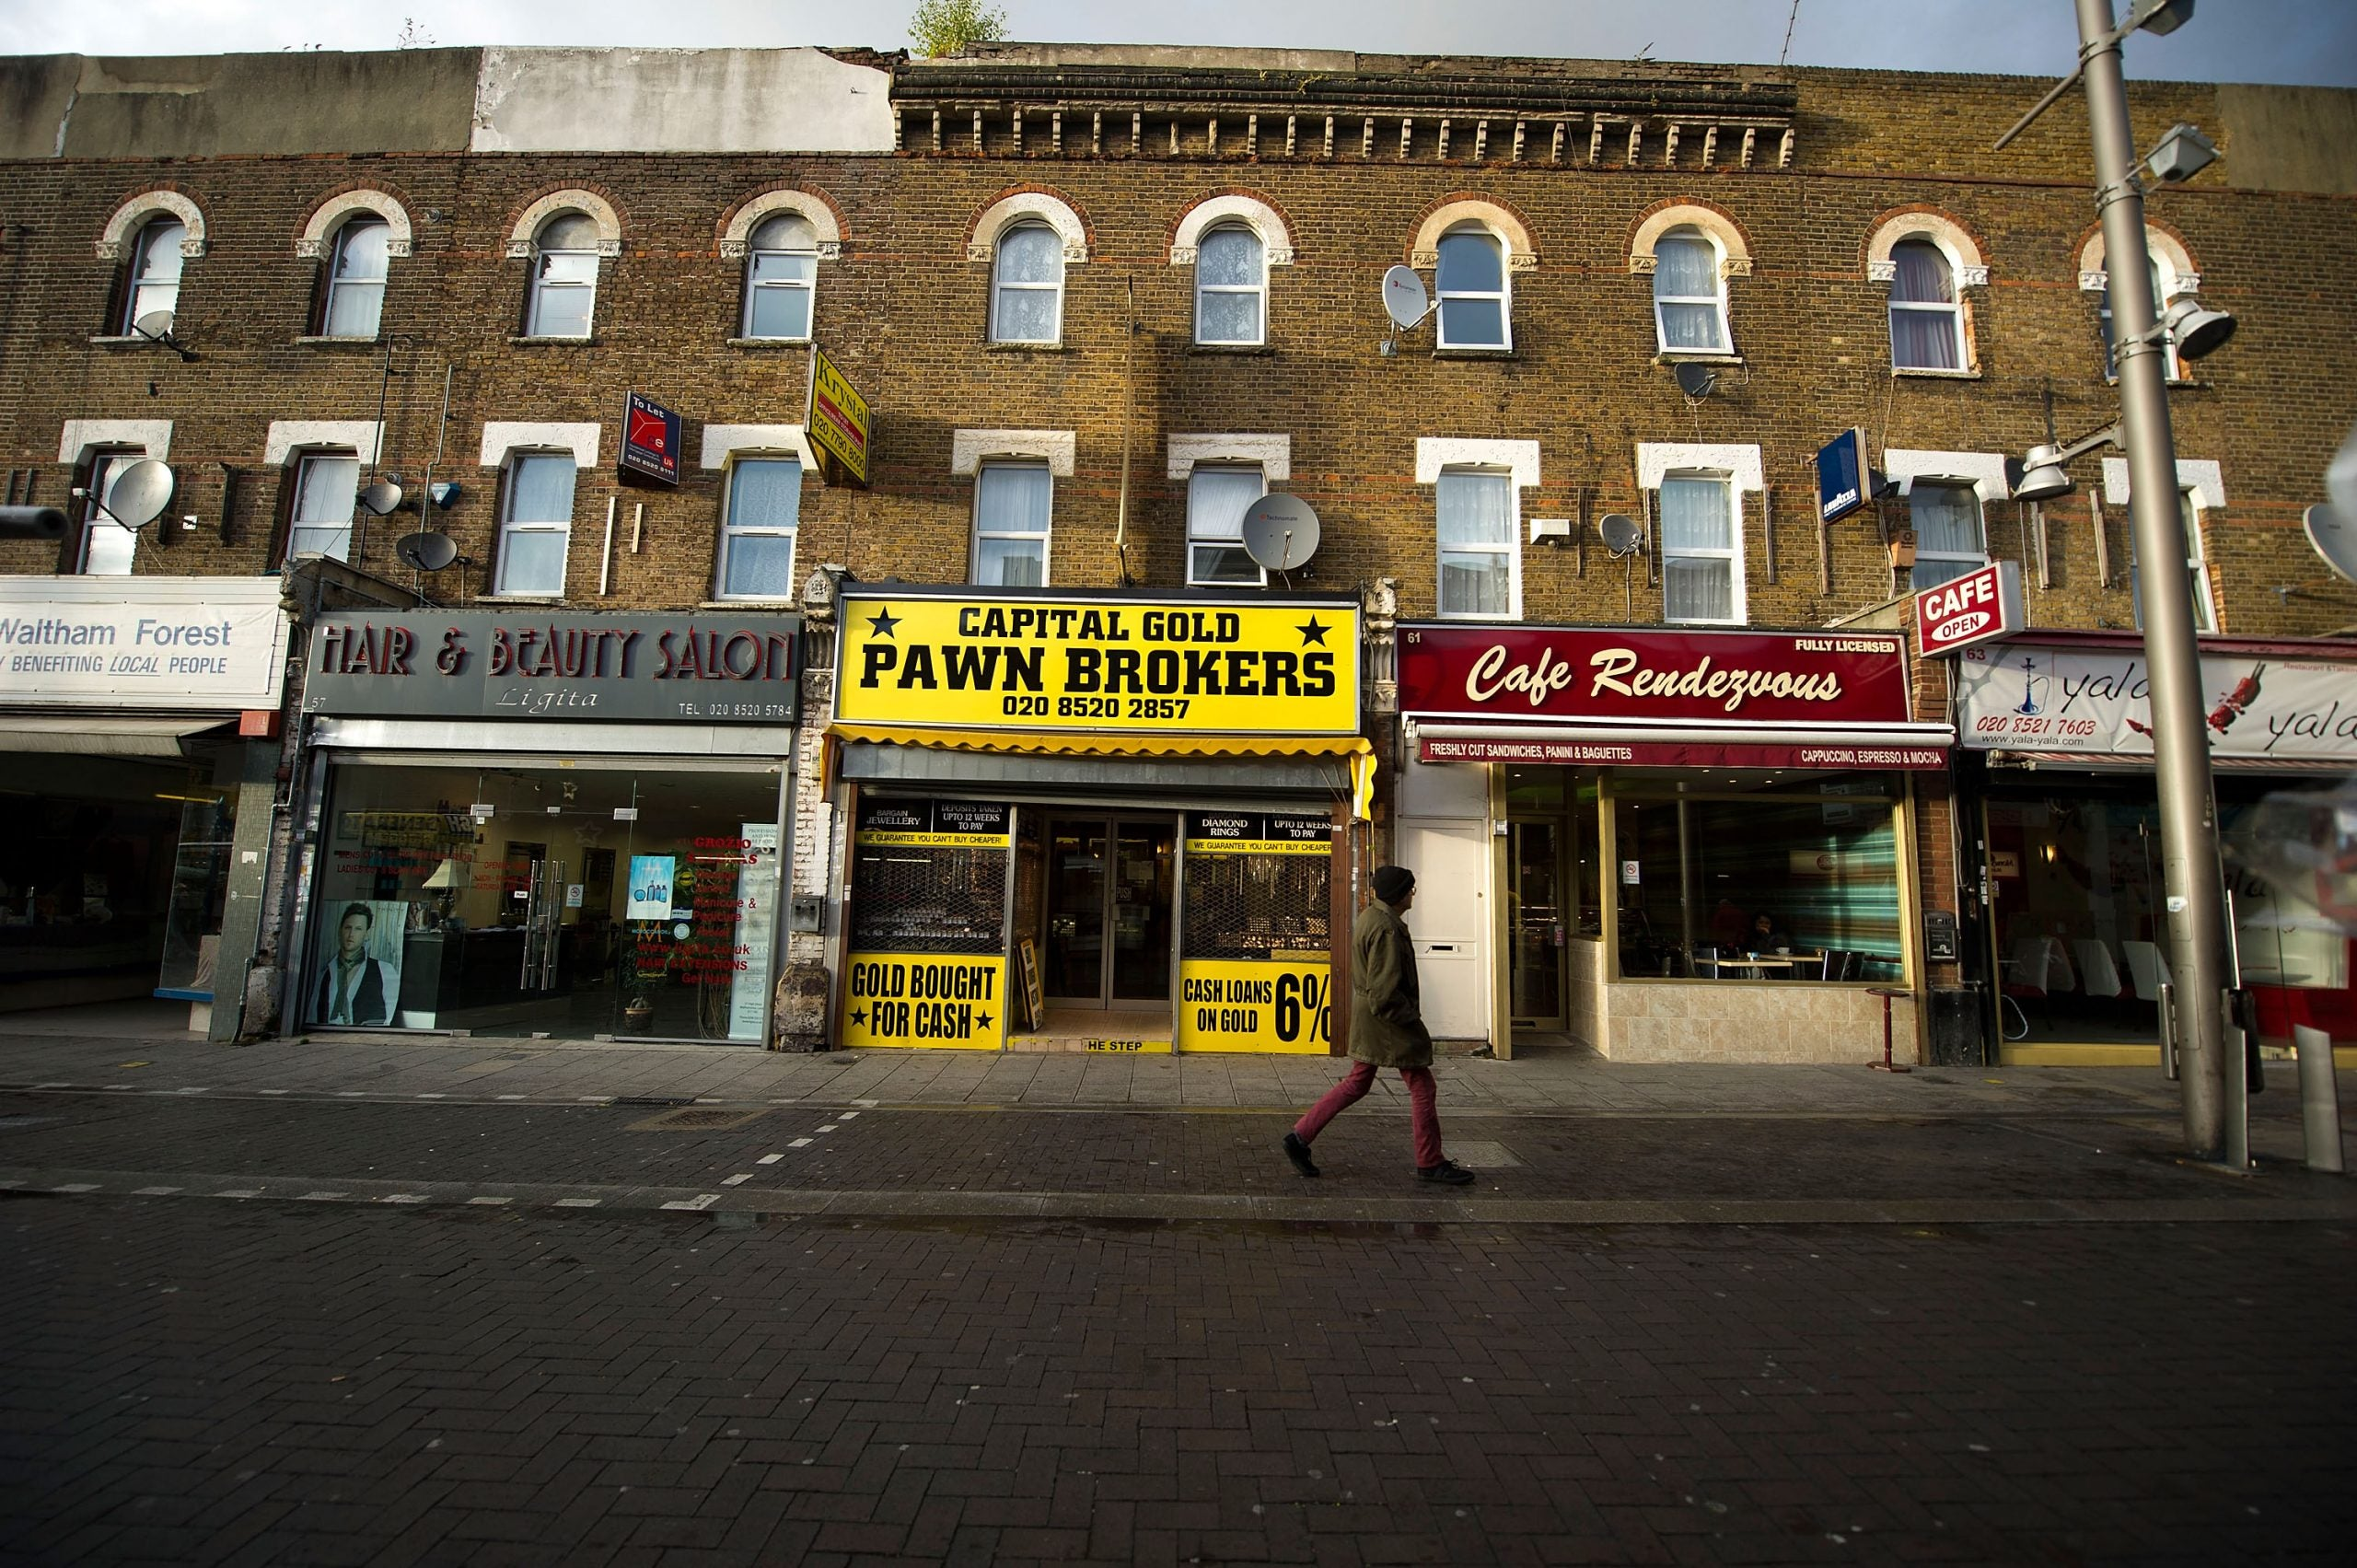 To save British high streets, forget the lost era of retail – and listen to millennials